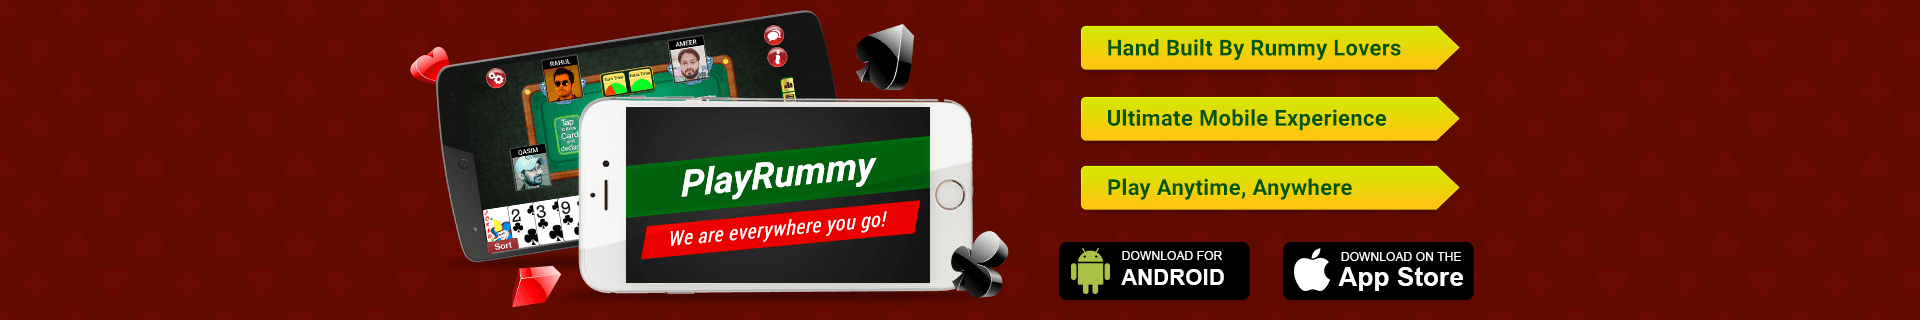 Download PlayRummy App